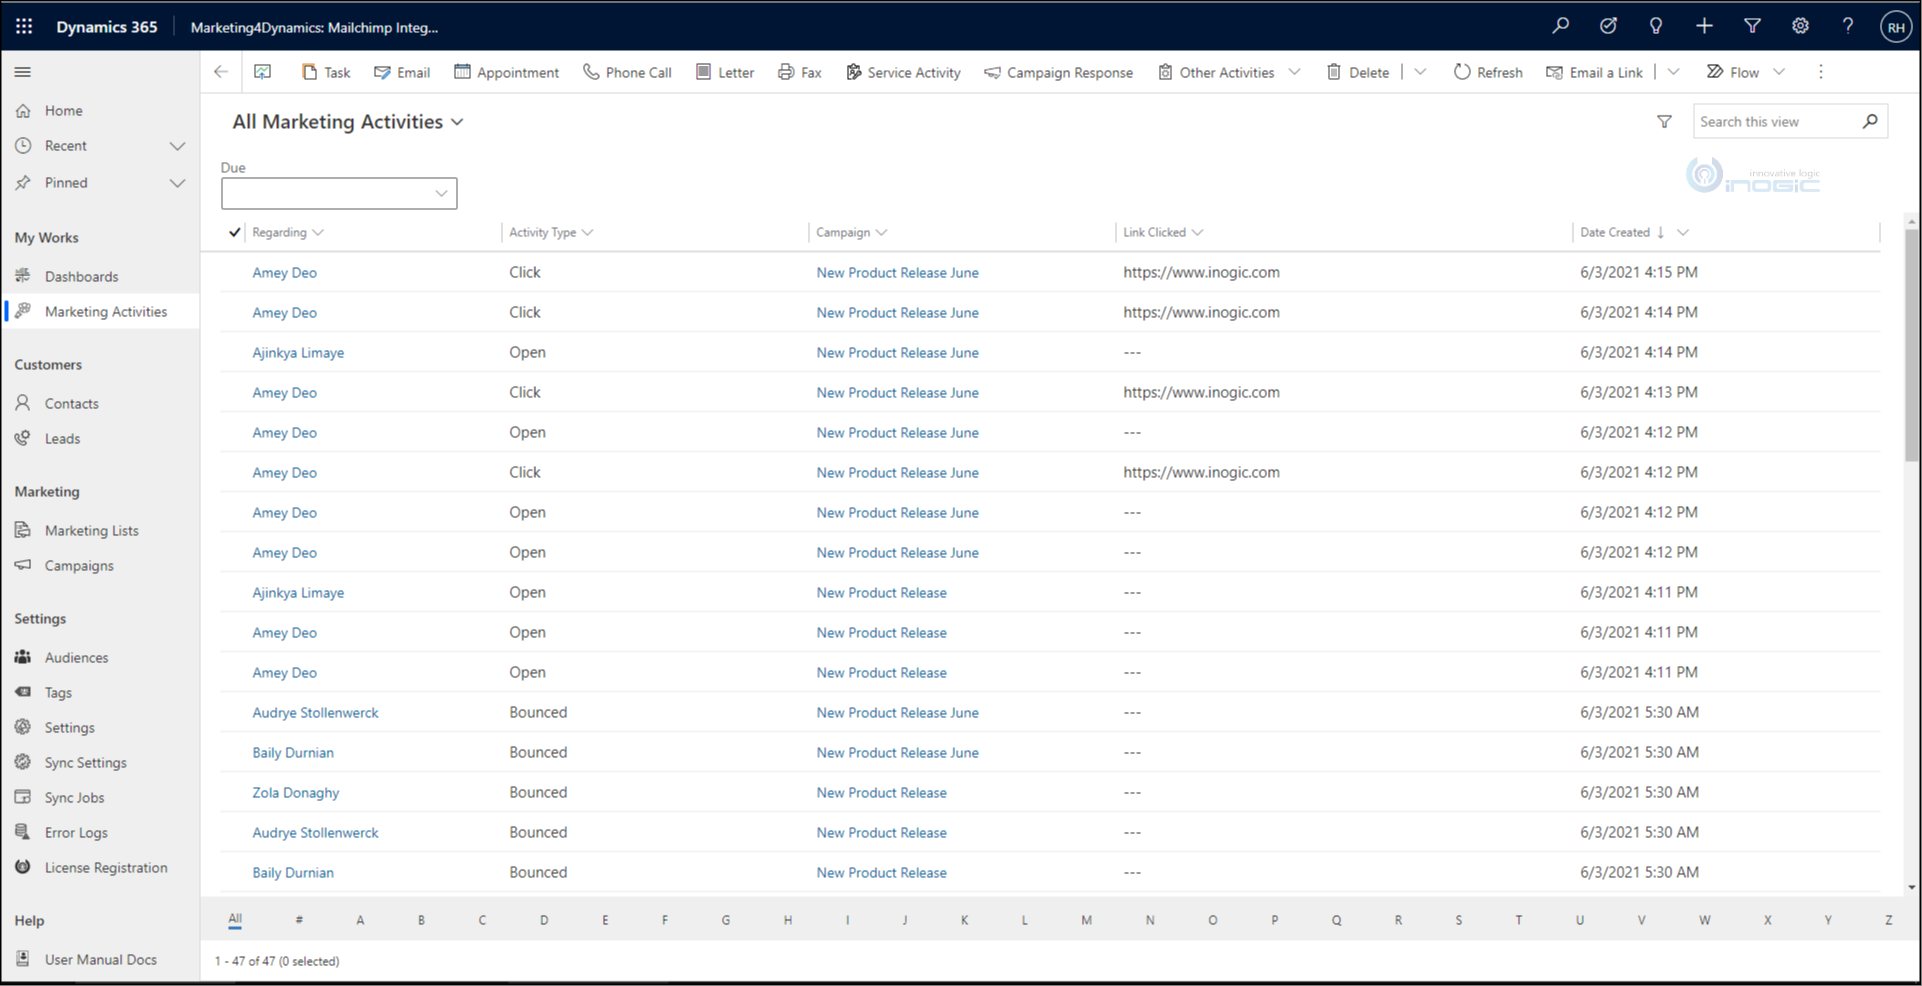 Mailchimp and Dynamics 365 CRM Integration - Get the best of both worlds with our new upcoming Marketing4Dynamics app!